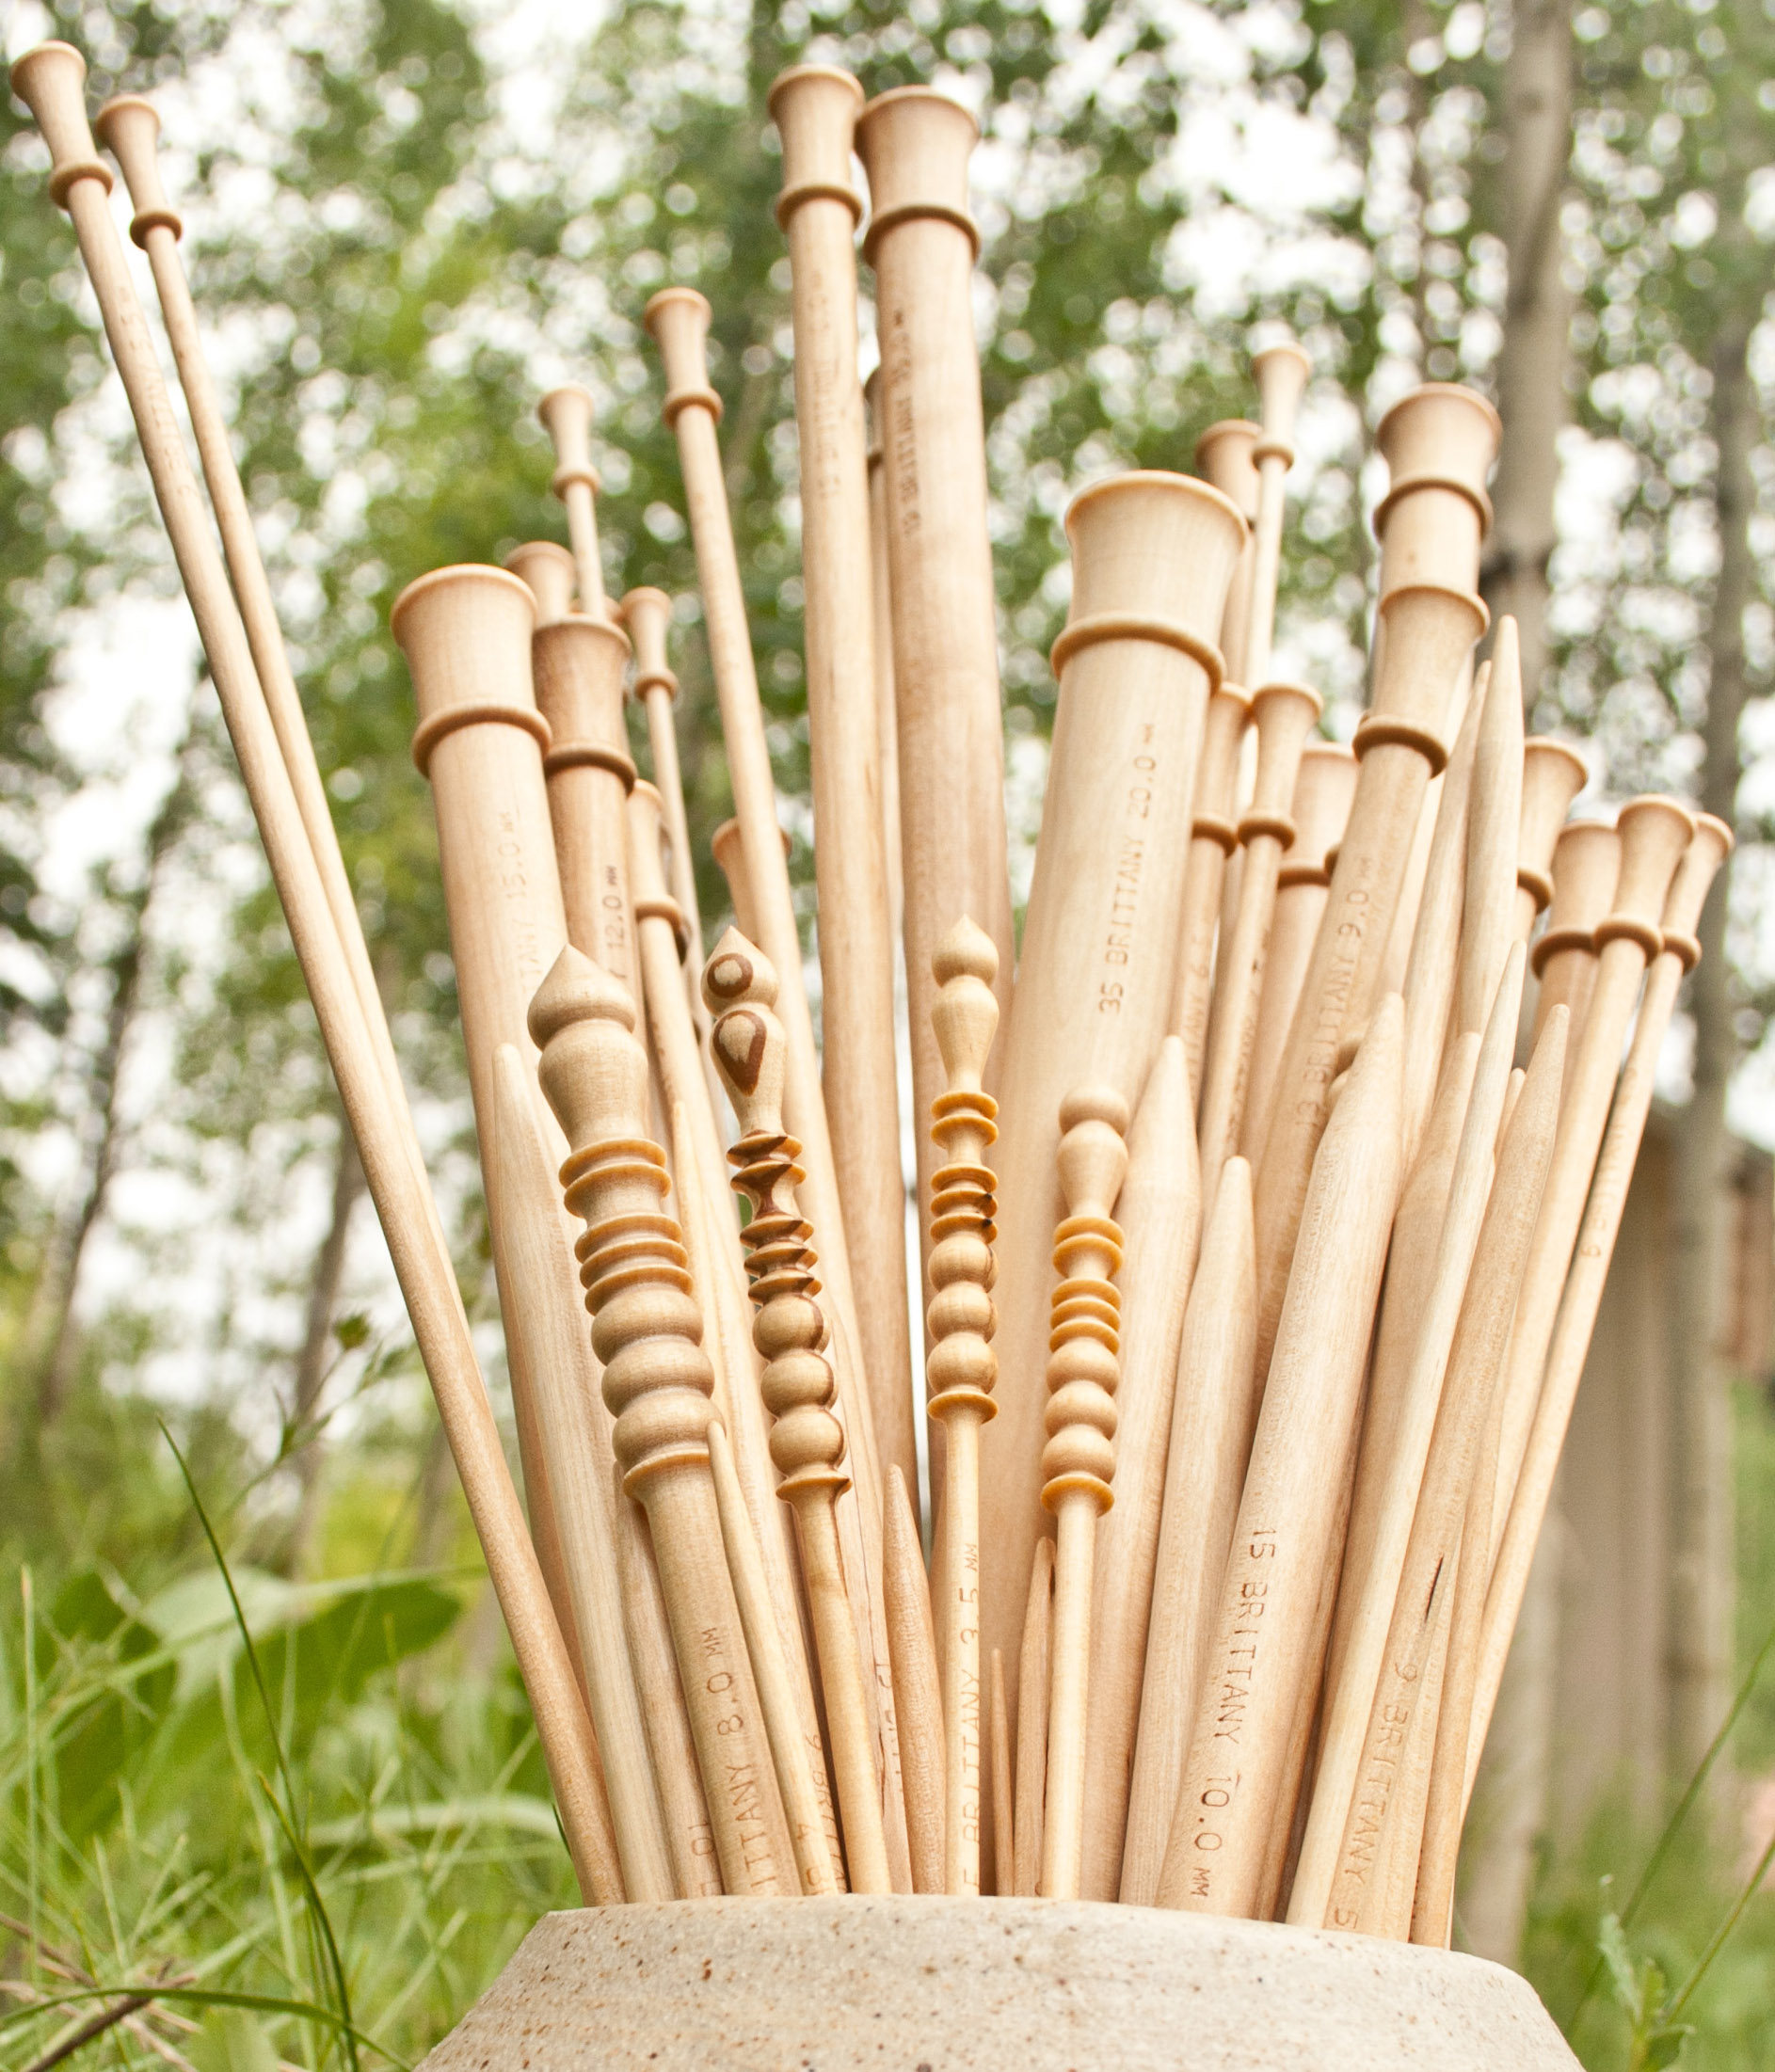 BRITTANY NEEDLES - We are proud to stock locally-made BRITTANY knitting needles and crochet hooks. Find out more about this local company HERE.